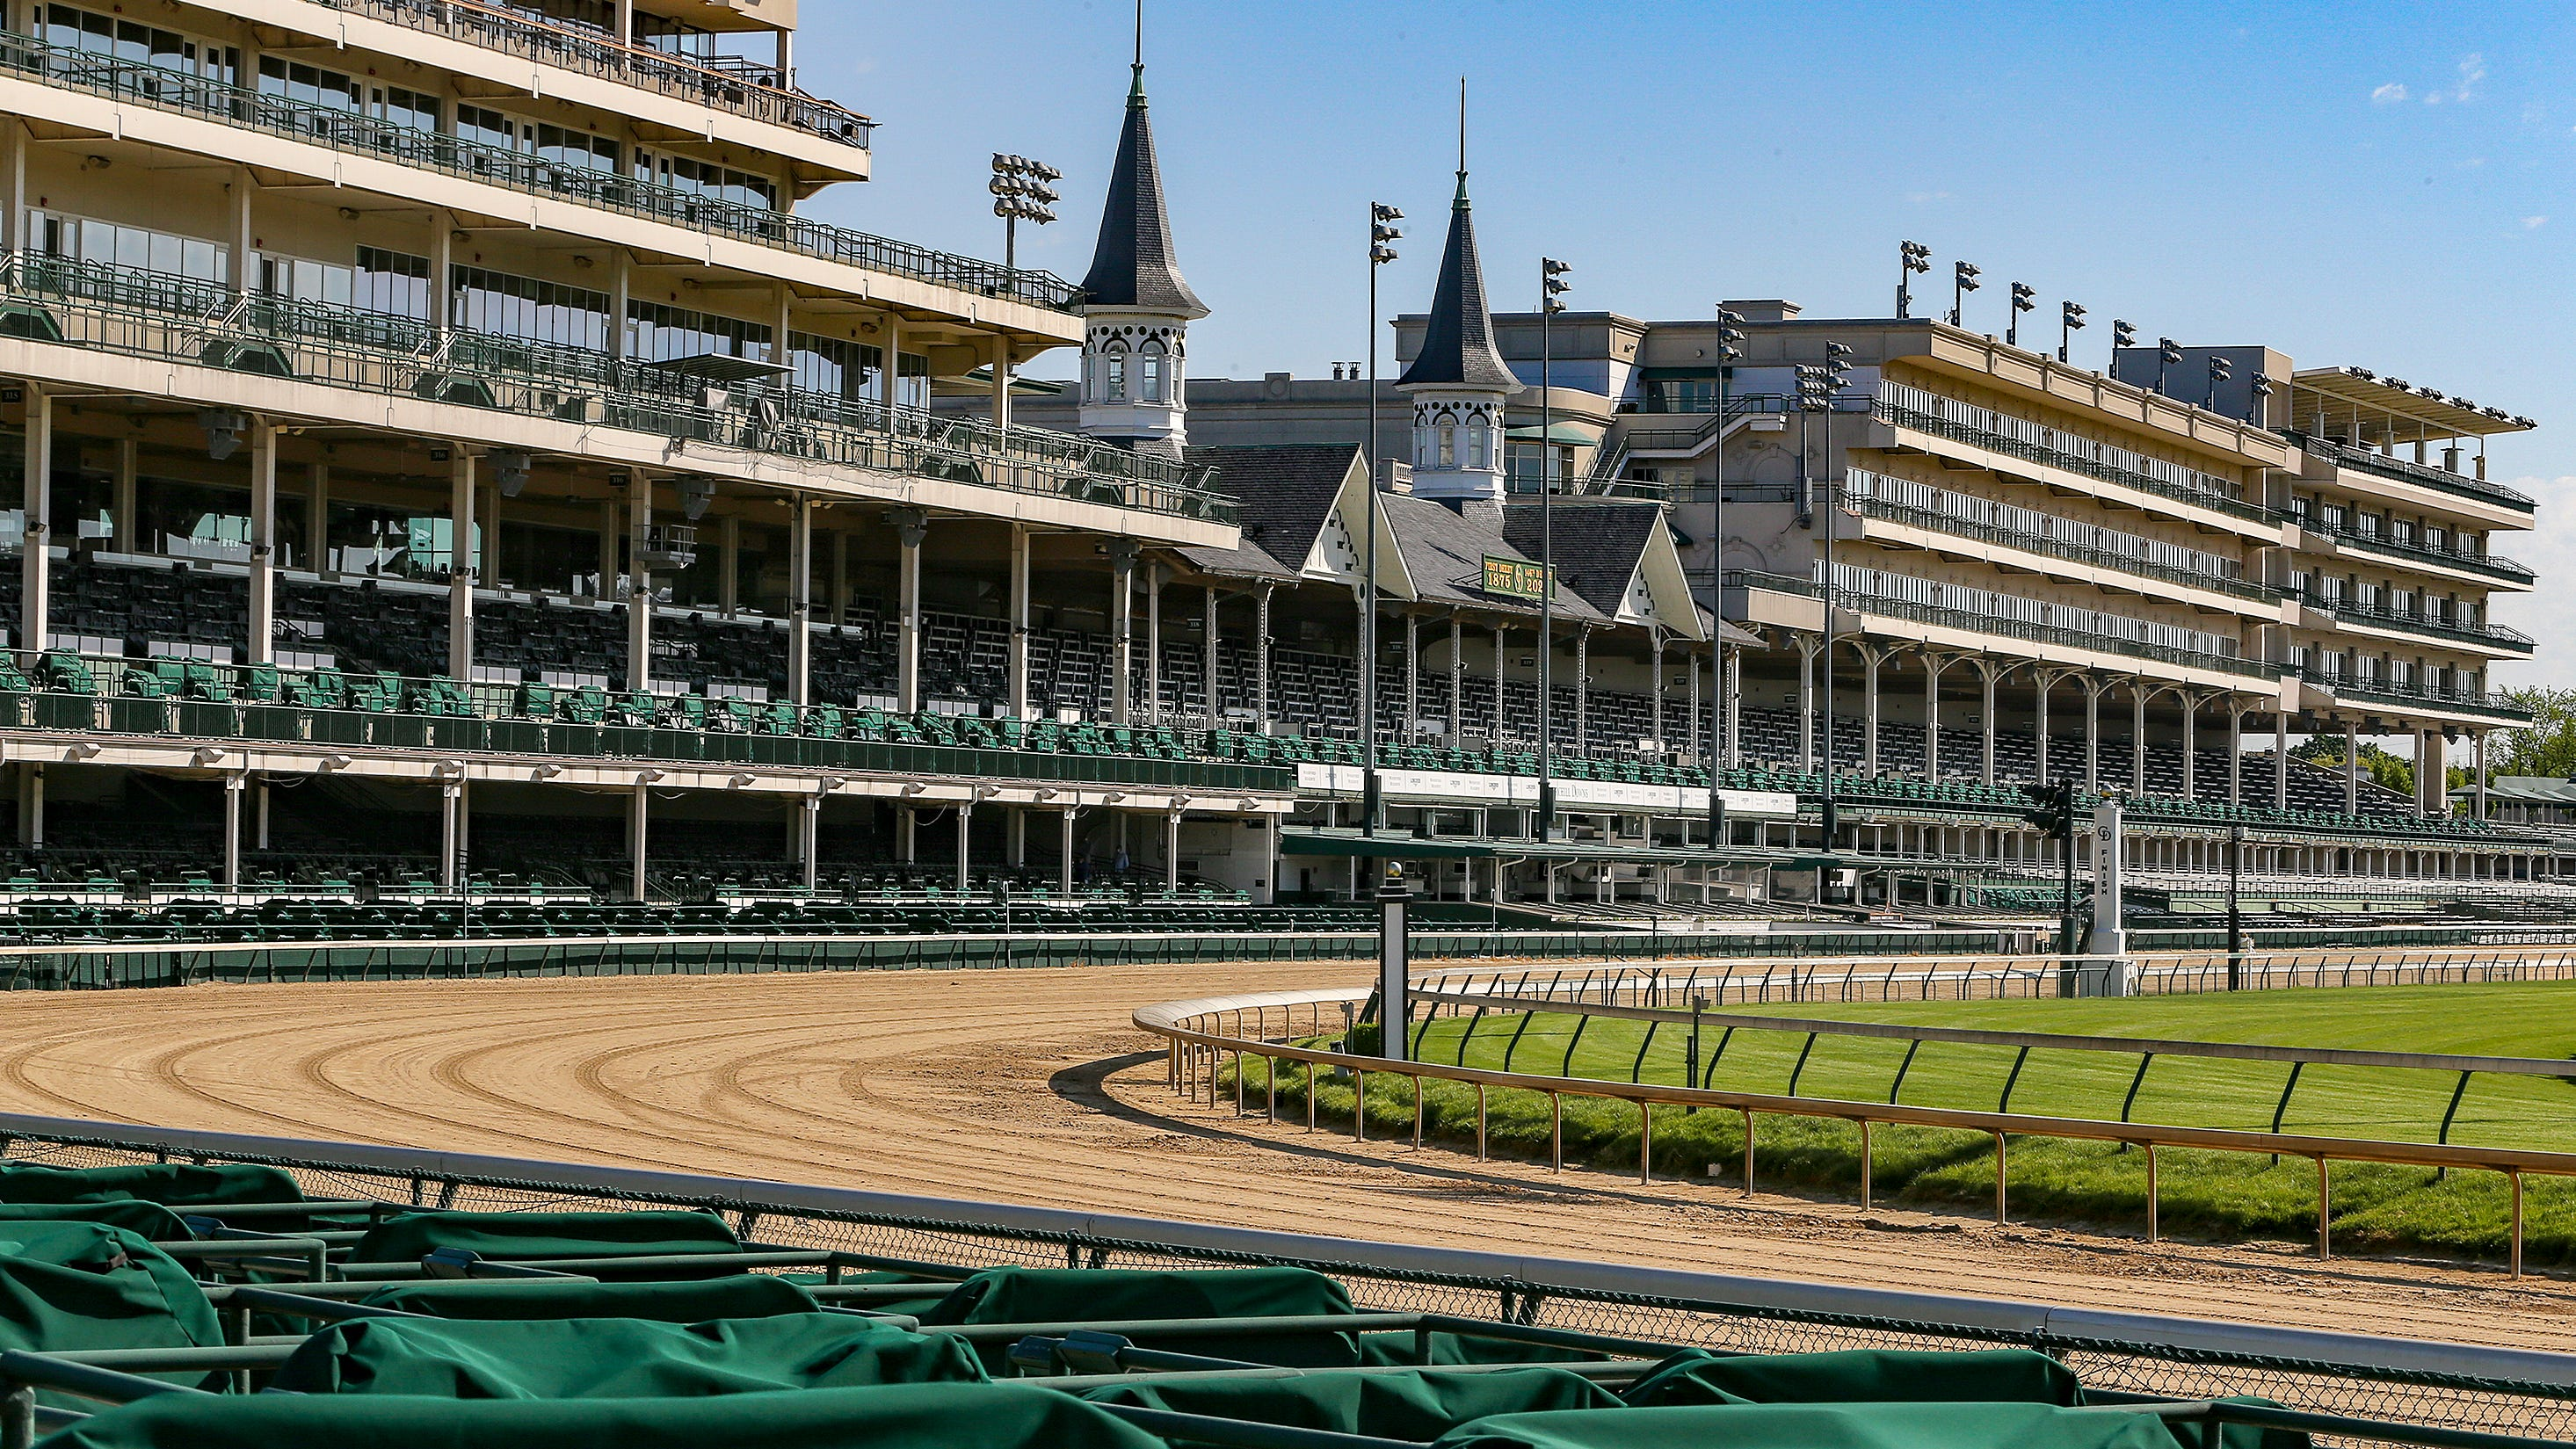 Kentucky Derby 2020: Limited fans at Churchill Downs for historic race